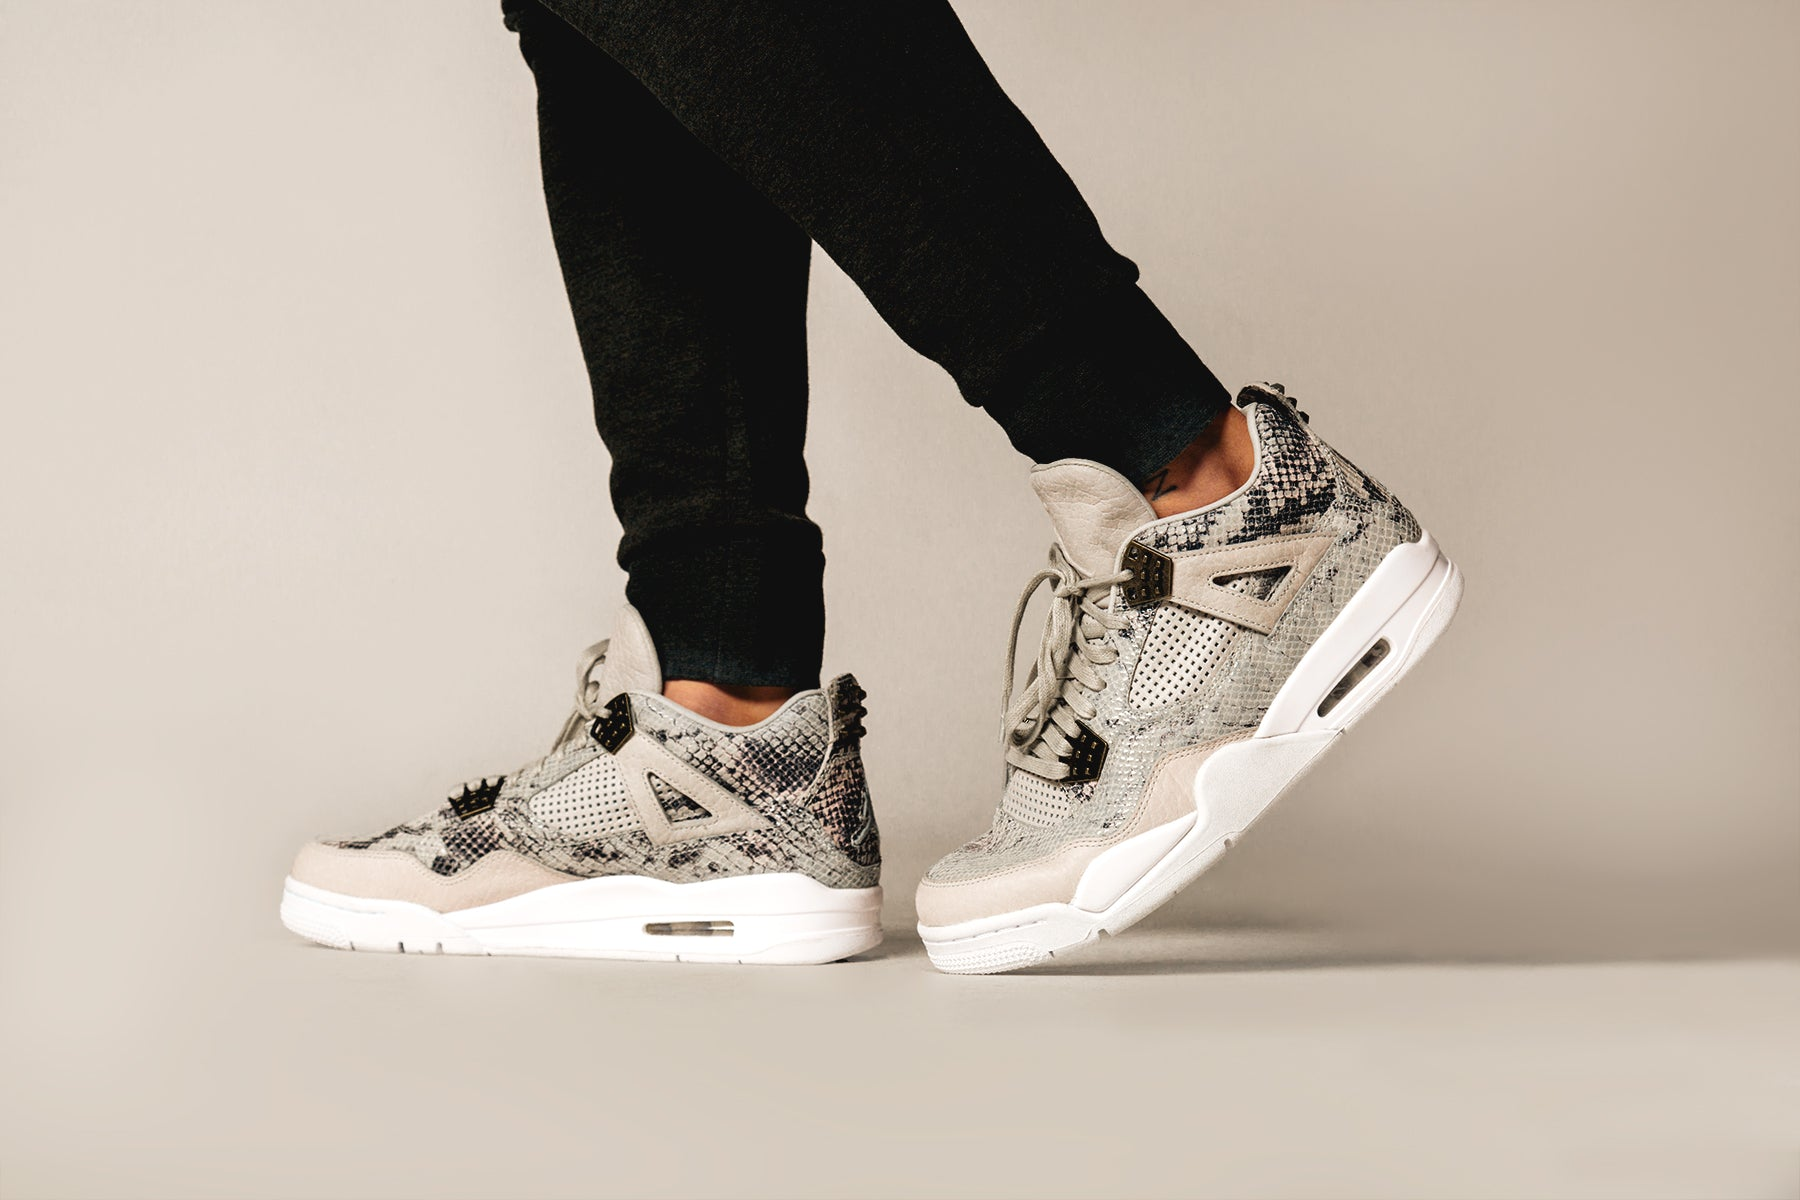 timeless design fb8a3 fdb72 ... wholesale the air jordan 4 retro premium snake skin is now available at  apbs columbia and